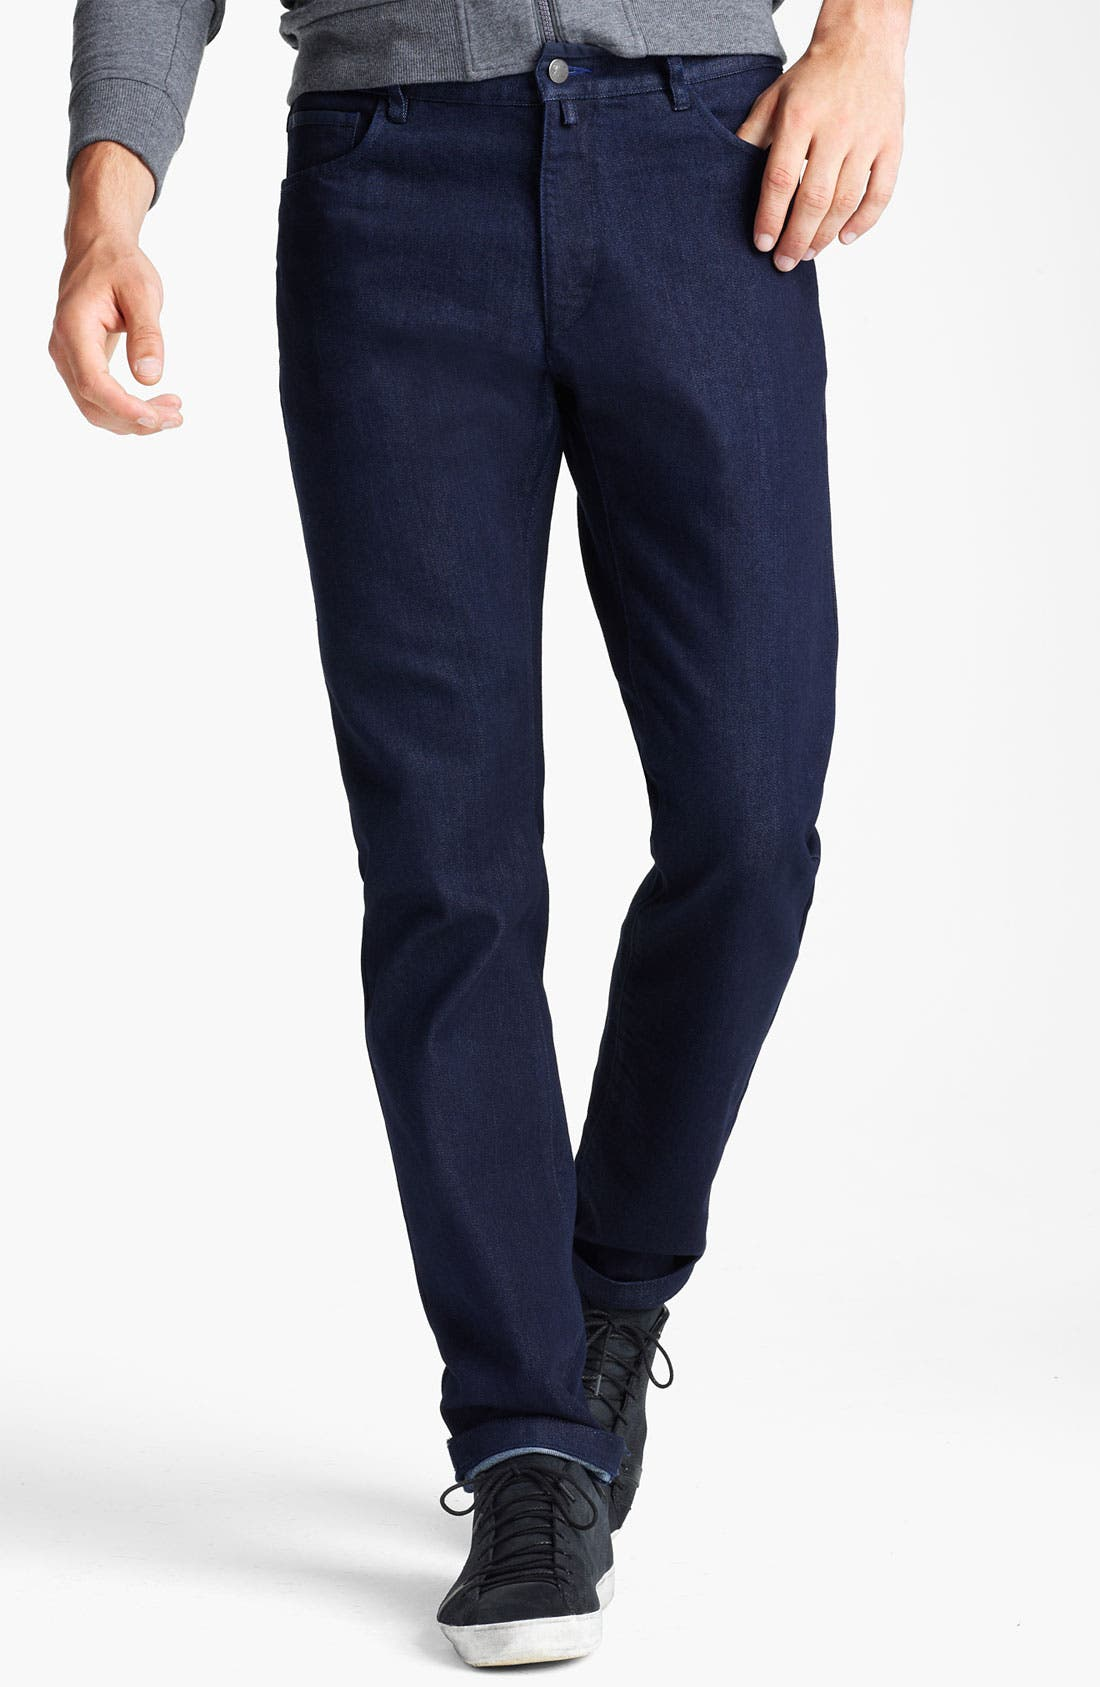 Alternate Image 1 Selected - Zegna Sport 'Cool Max' Straight Leg Jeans (Dark Blue)